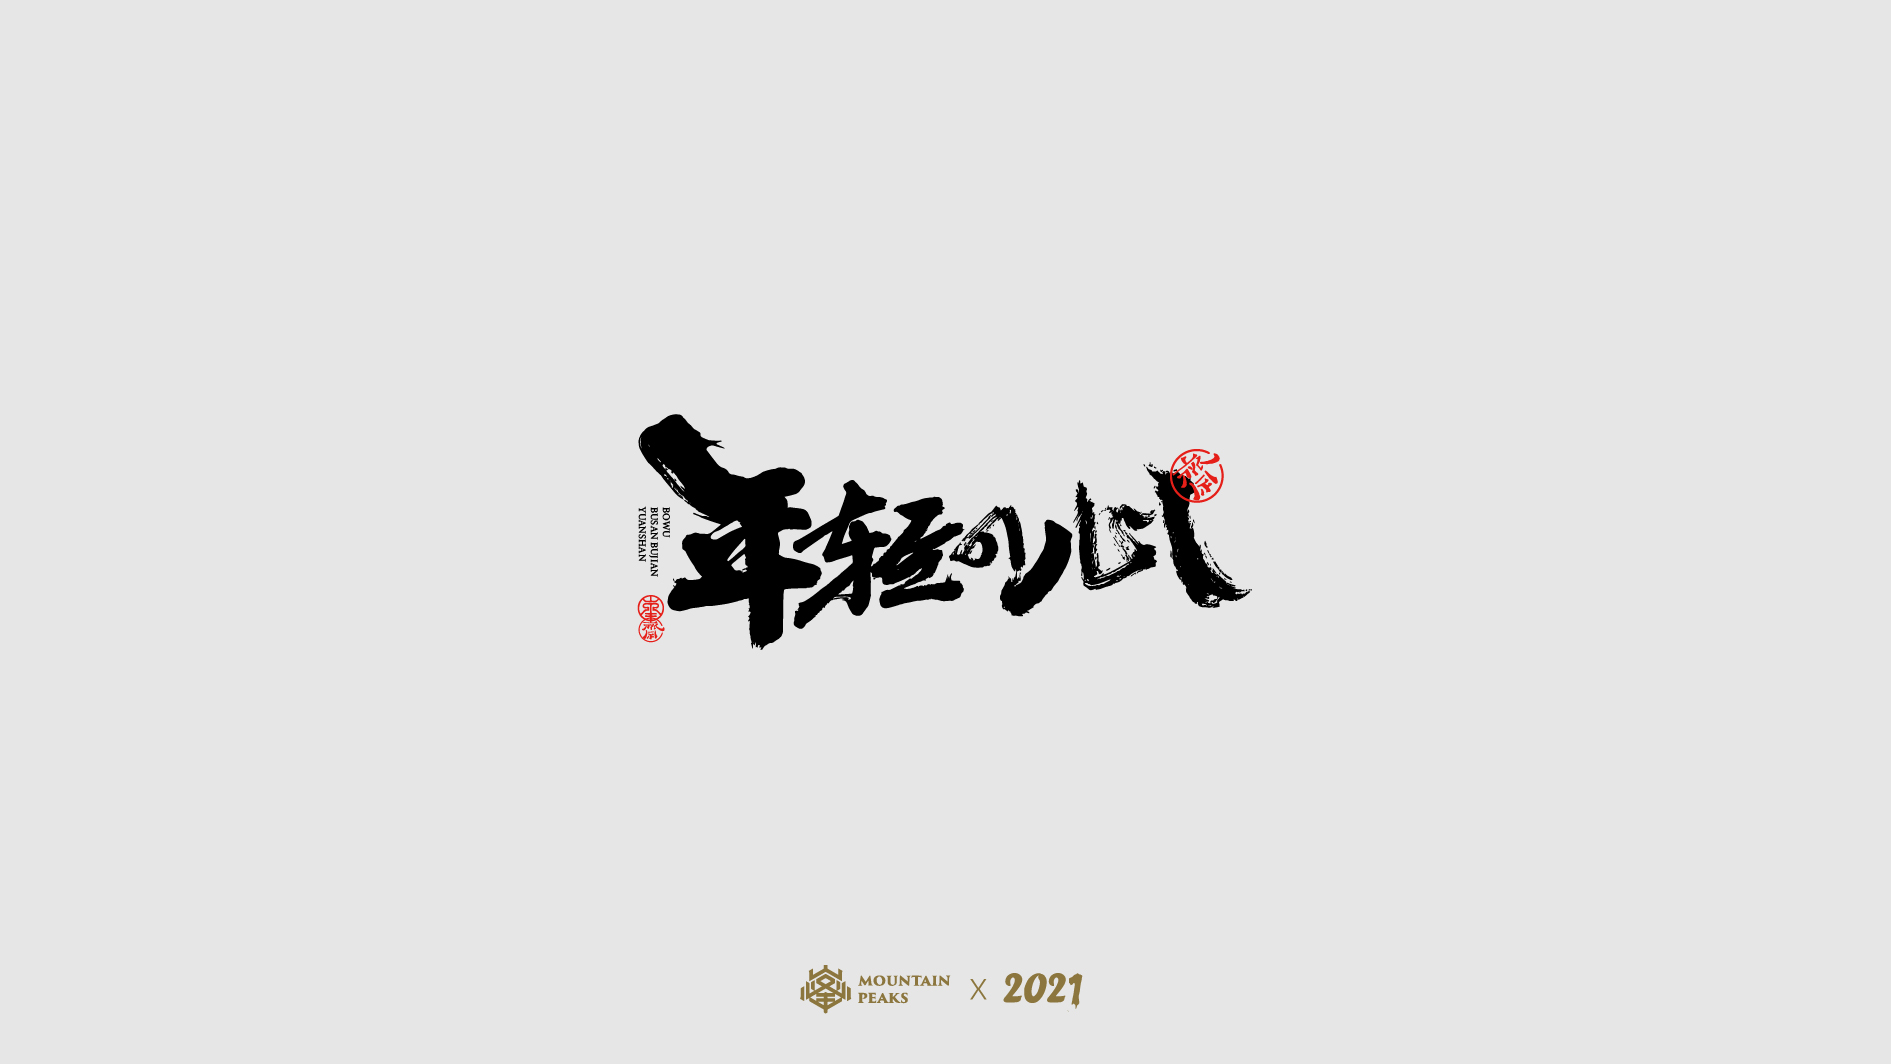 20P Collection of the latest Chinese font design schemes in 2021 #.595